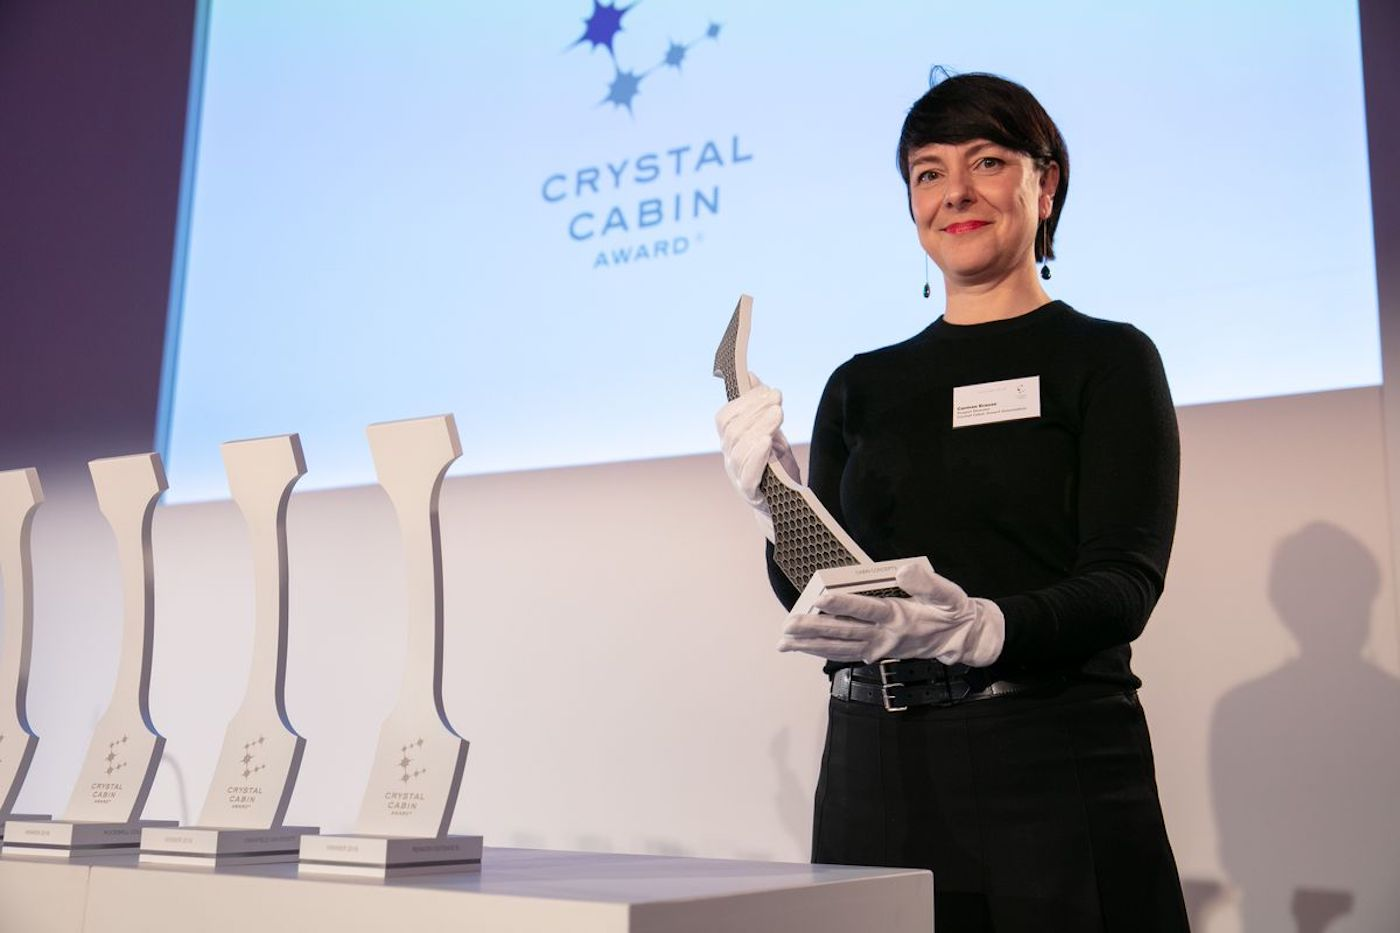 Carmen Krause is project director of the Crystal Cabin Awards holding a trophy